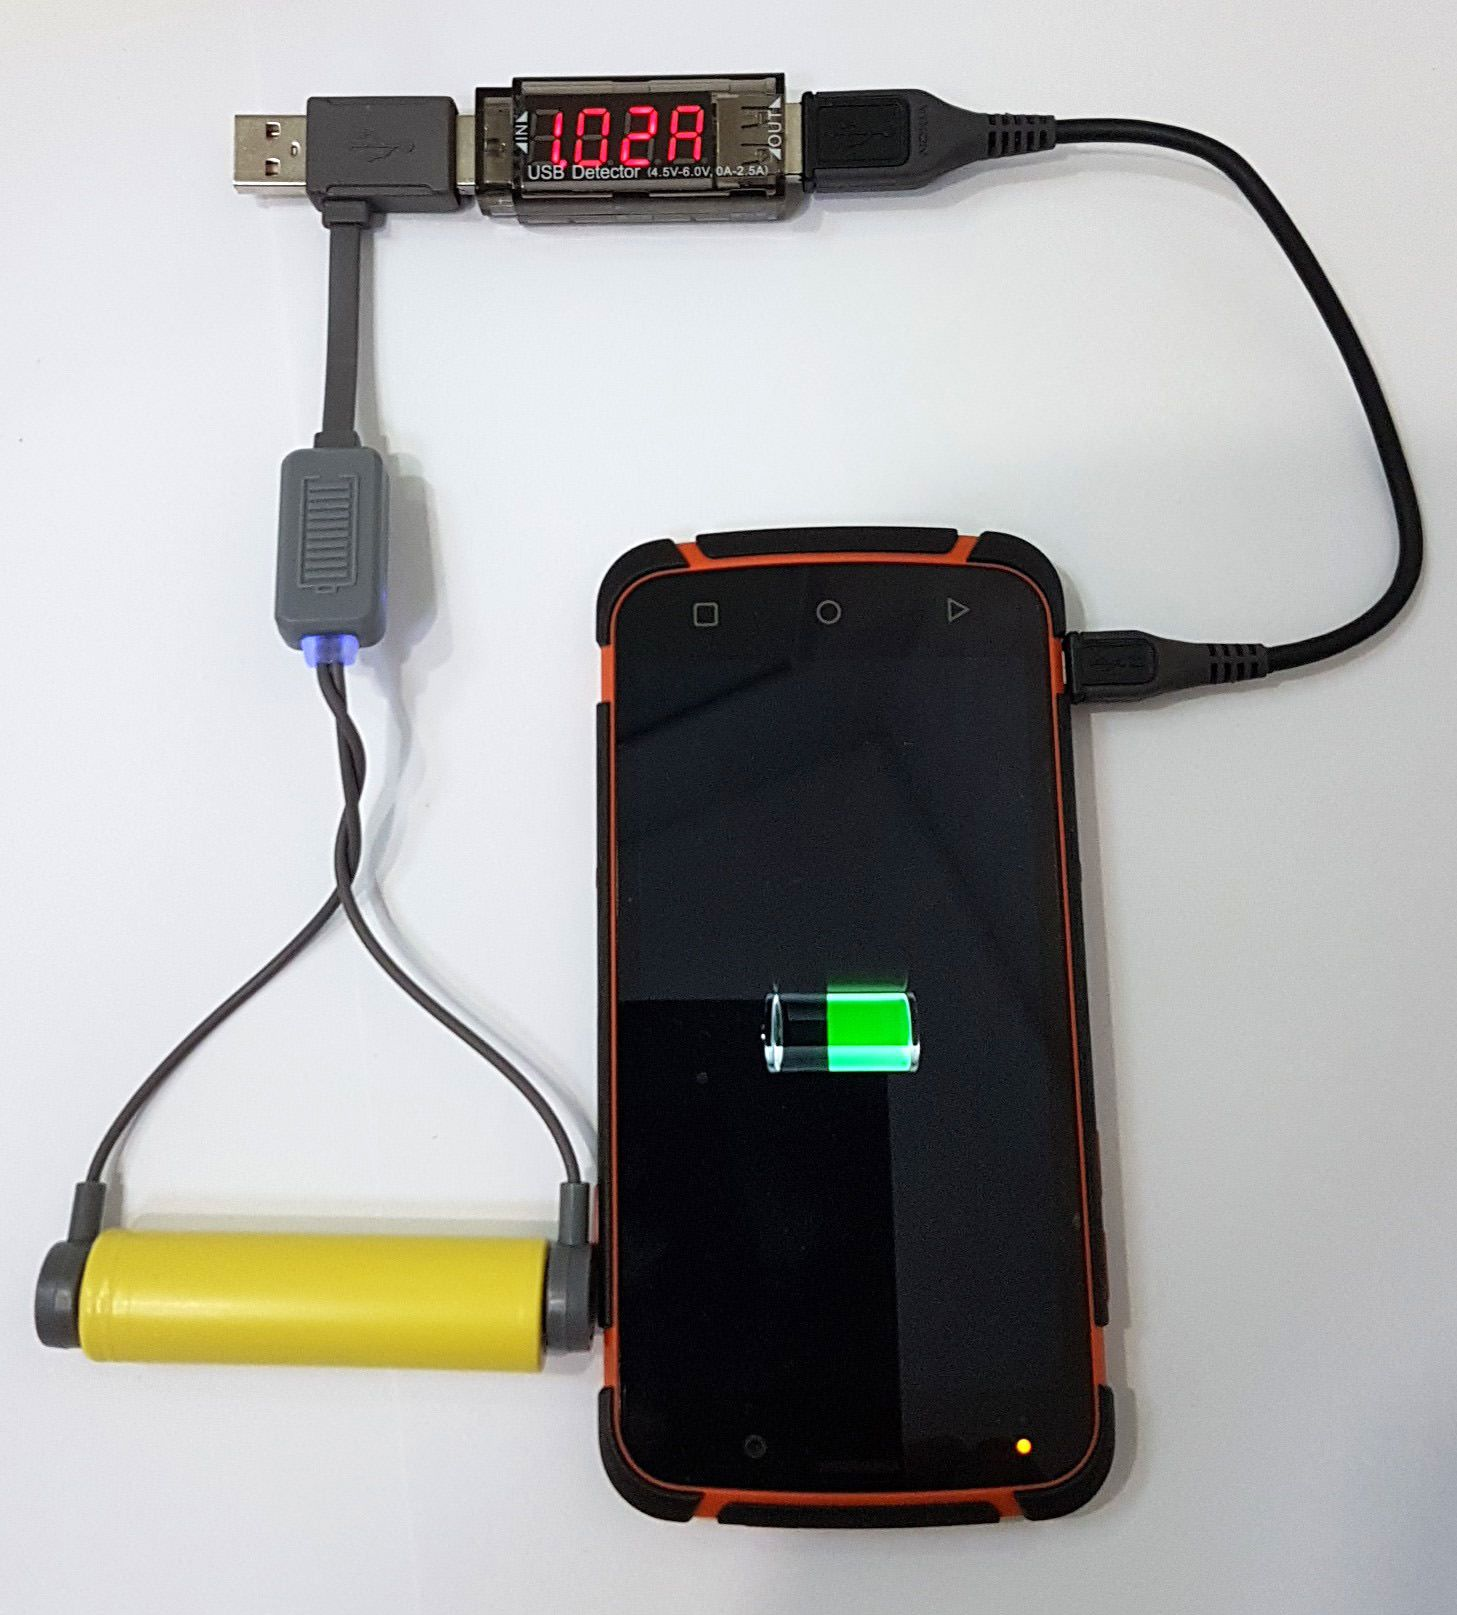 Folomov A1 Charger Also Has Discharging Capability With A1 You Can Use A 18650 To Charge Your Cell Phone Magnetic Charger Battery Charger Powerbank